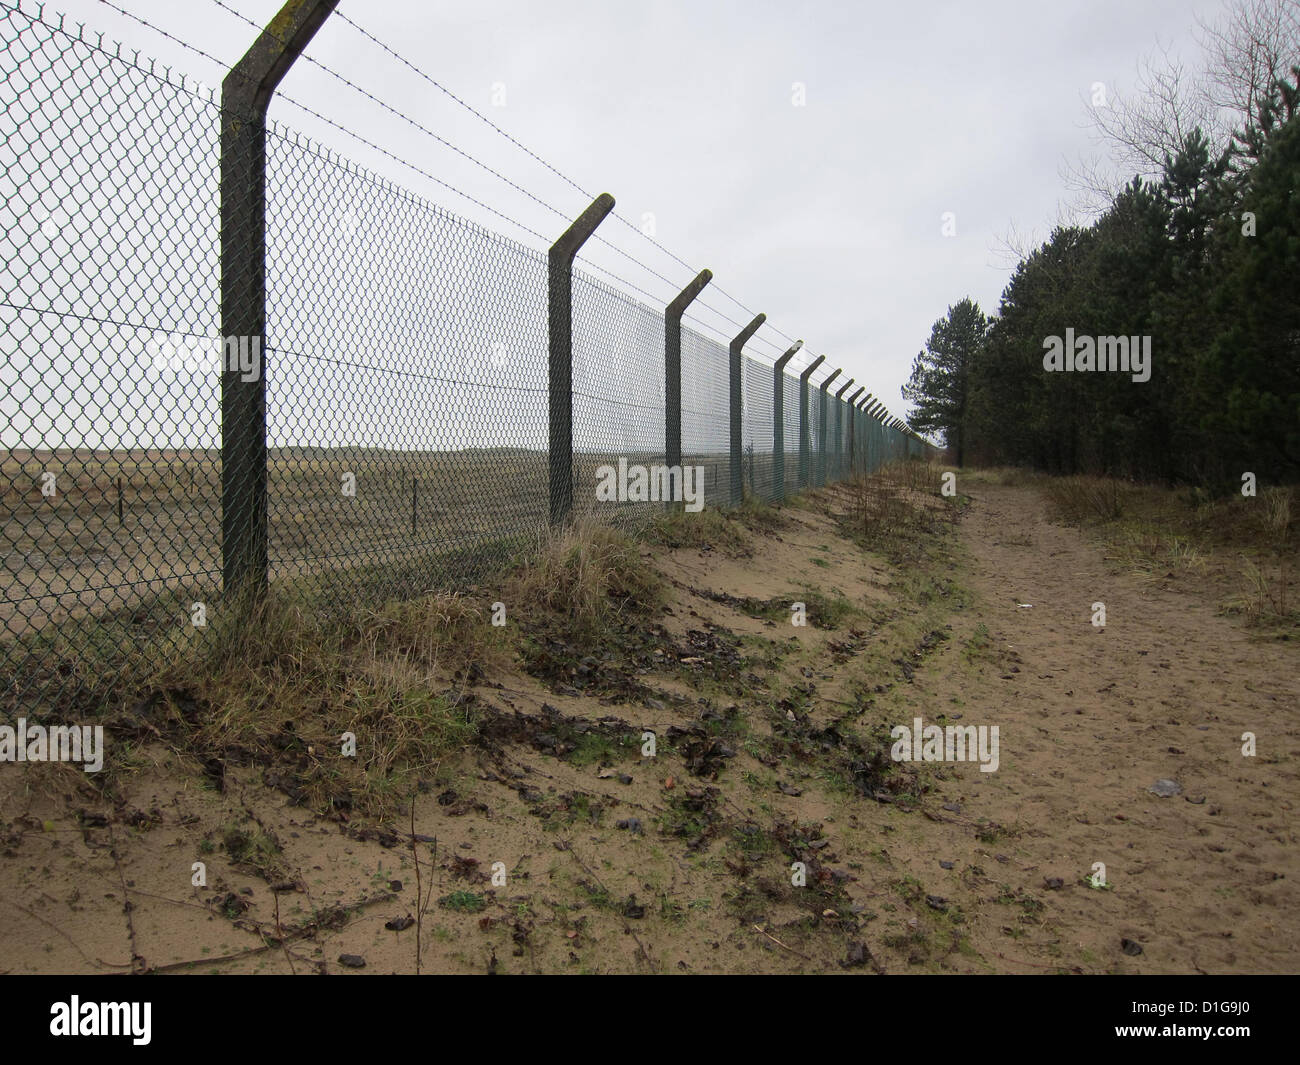 Wire security fence around an empty plot of land, near Swansea, South Wales, December 2012 - Stock Image